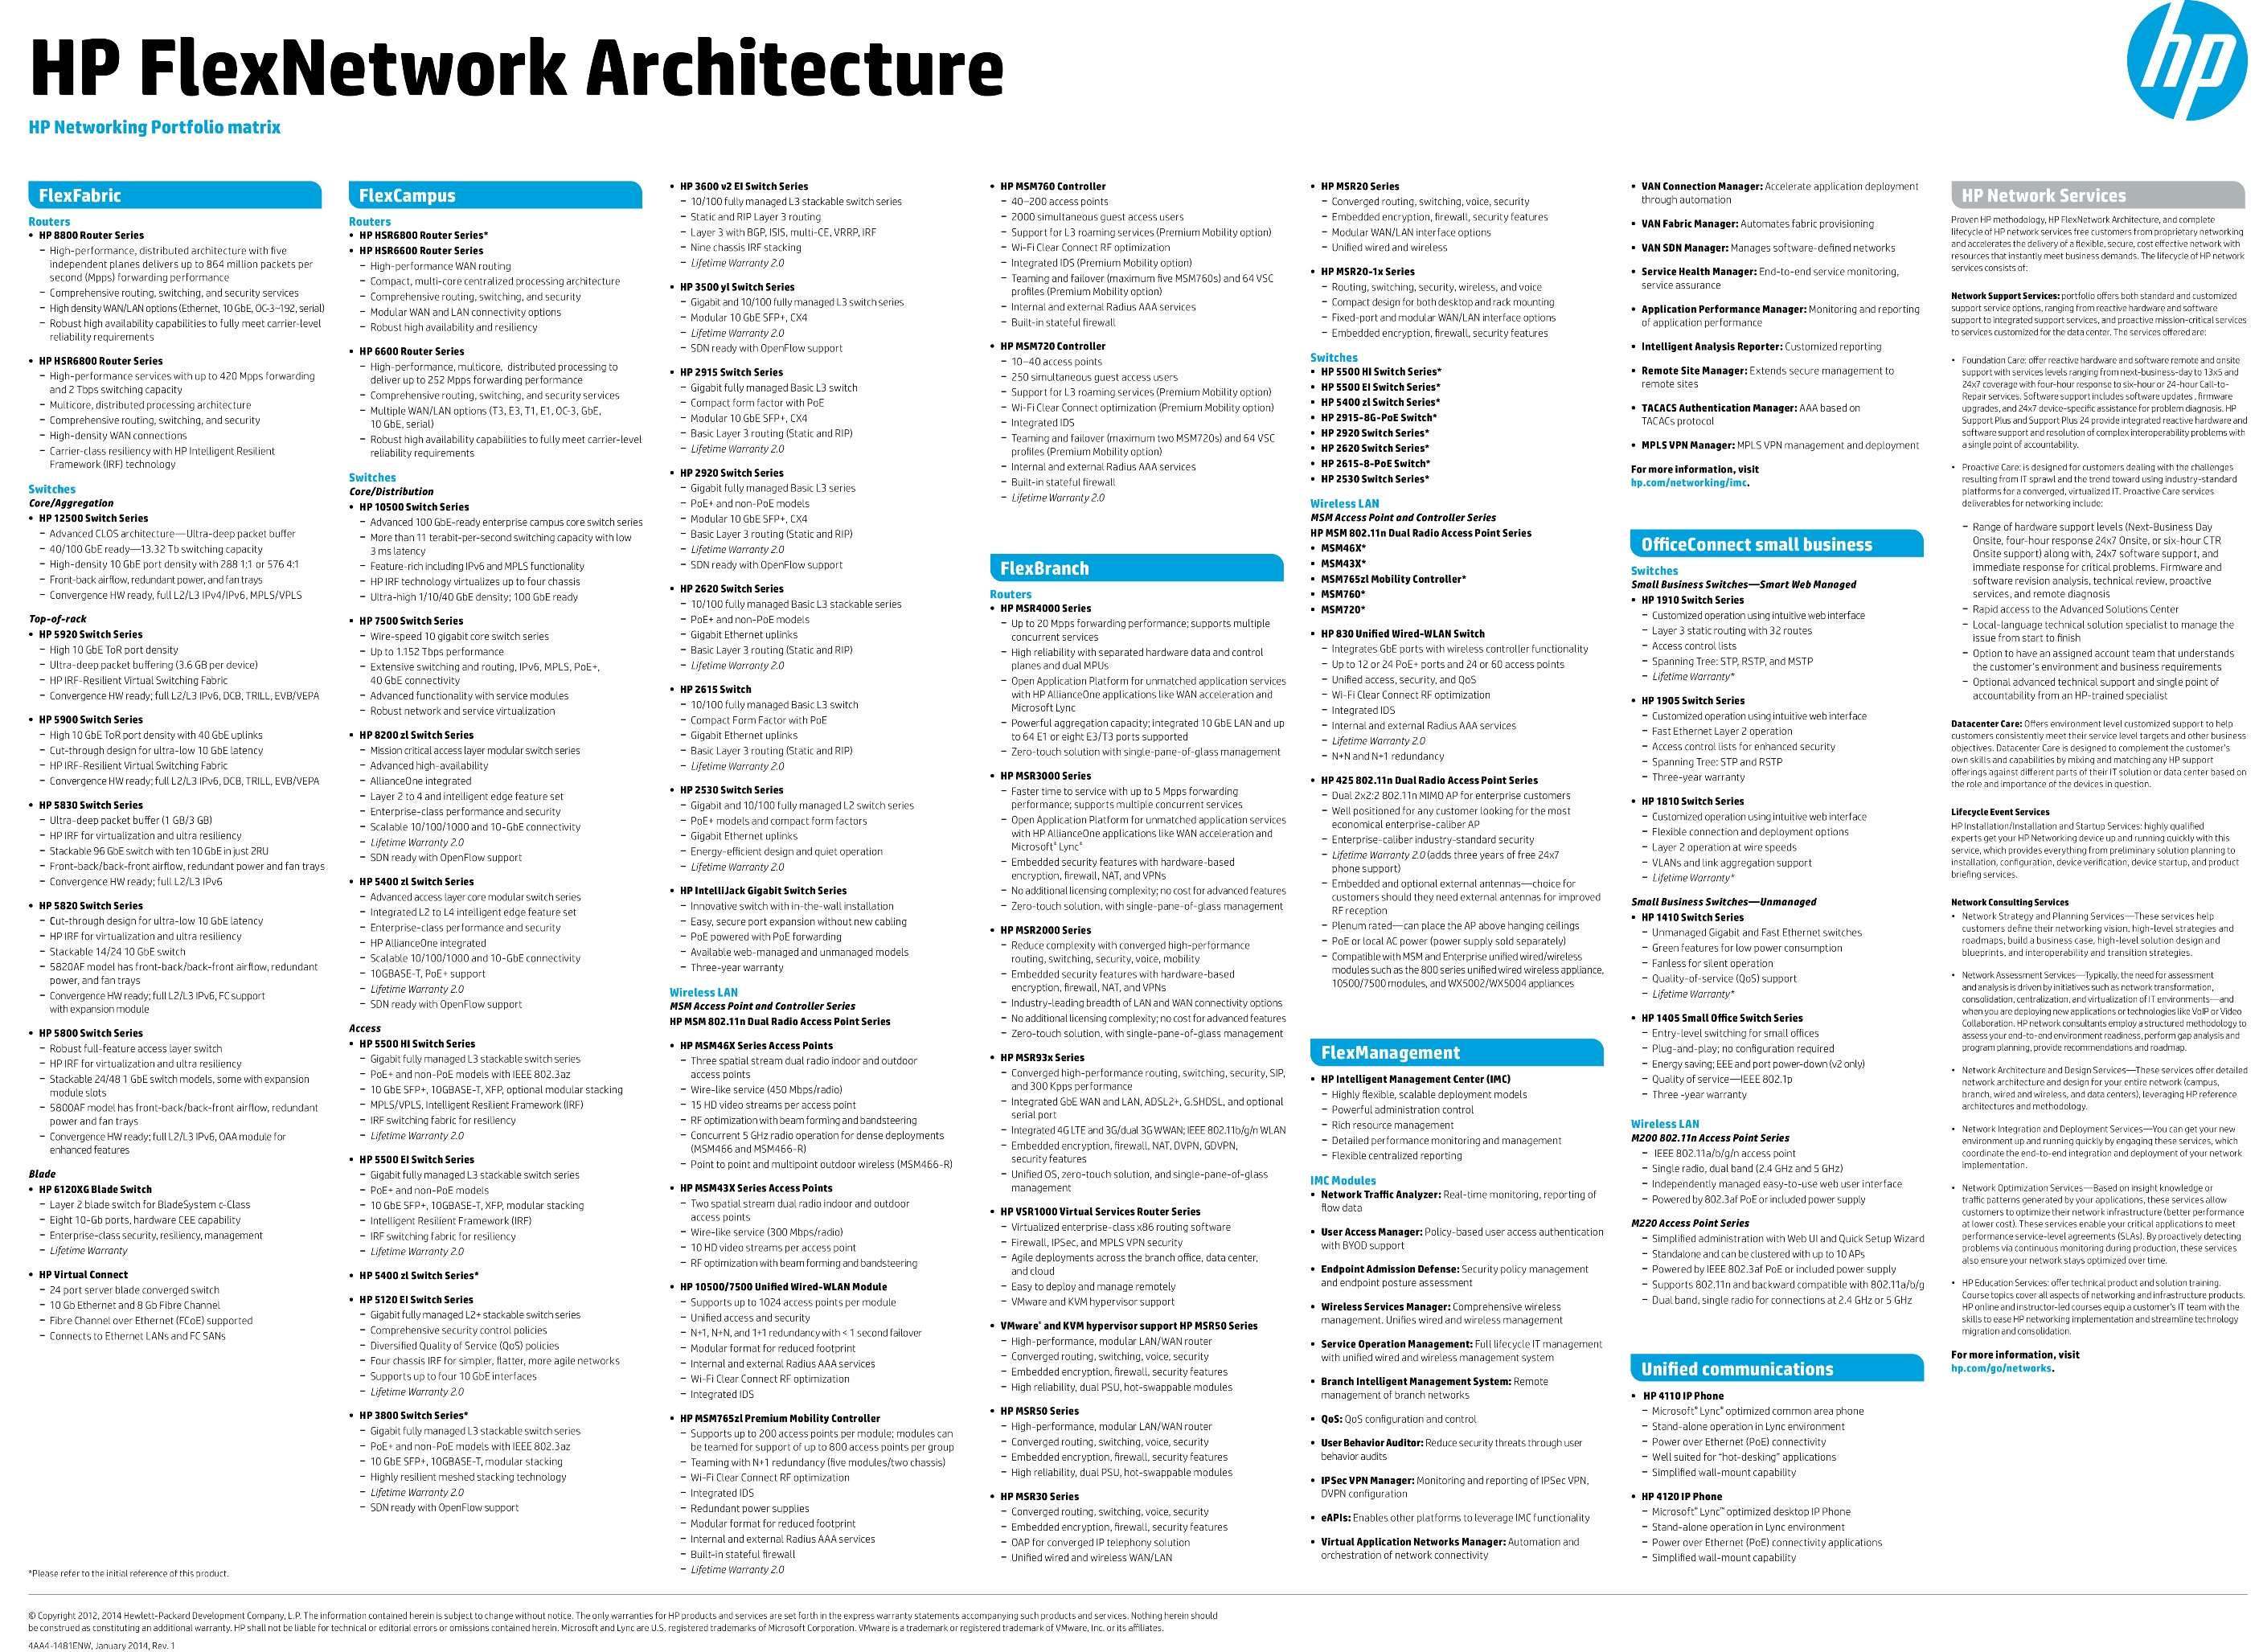 HP_FlexNetwork_Architecture_2014-2